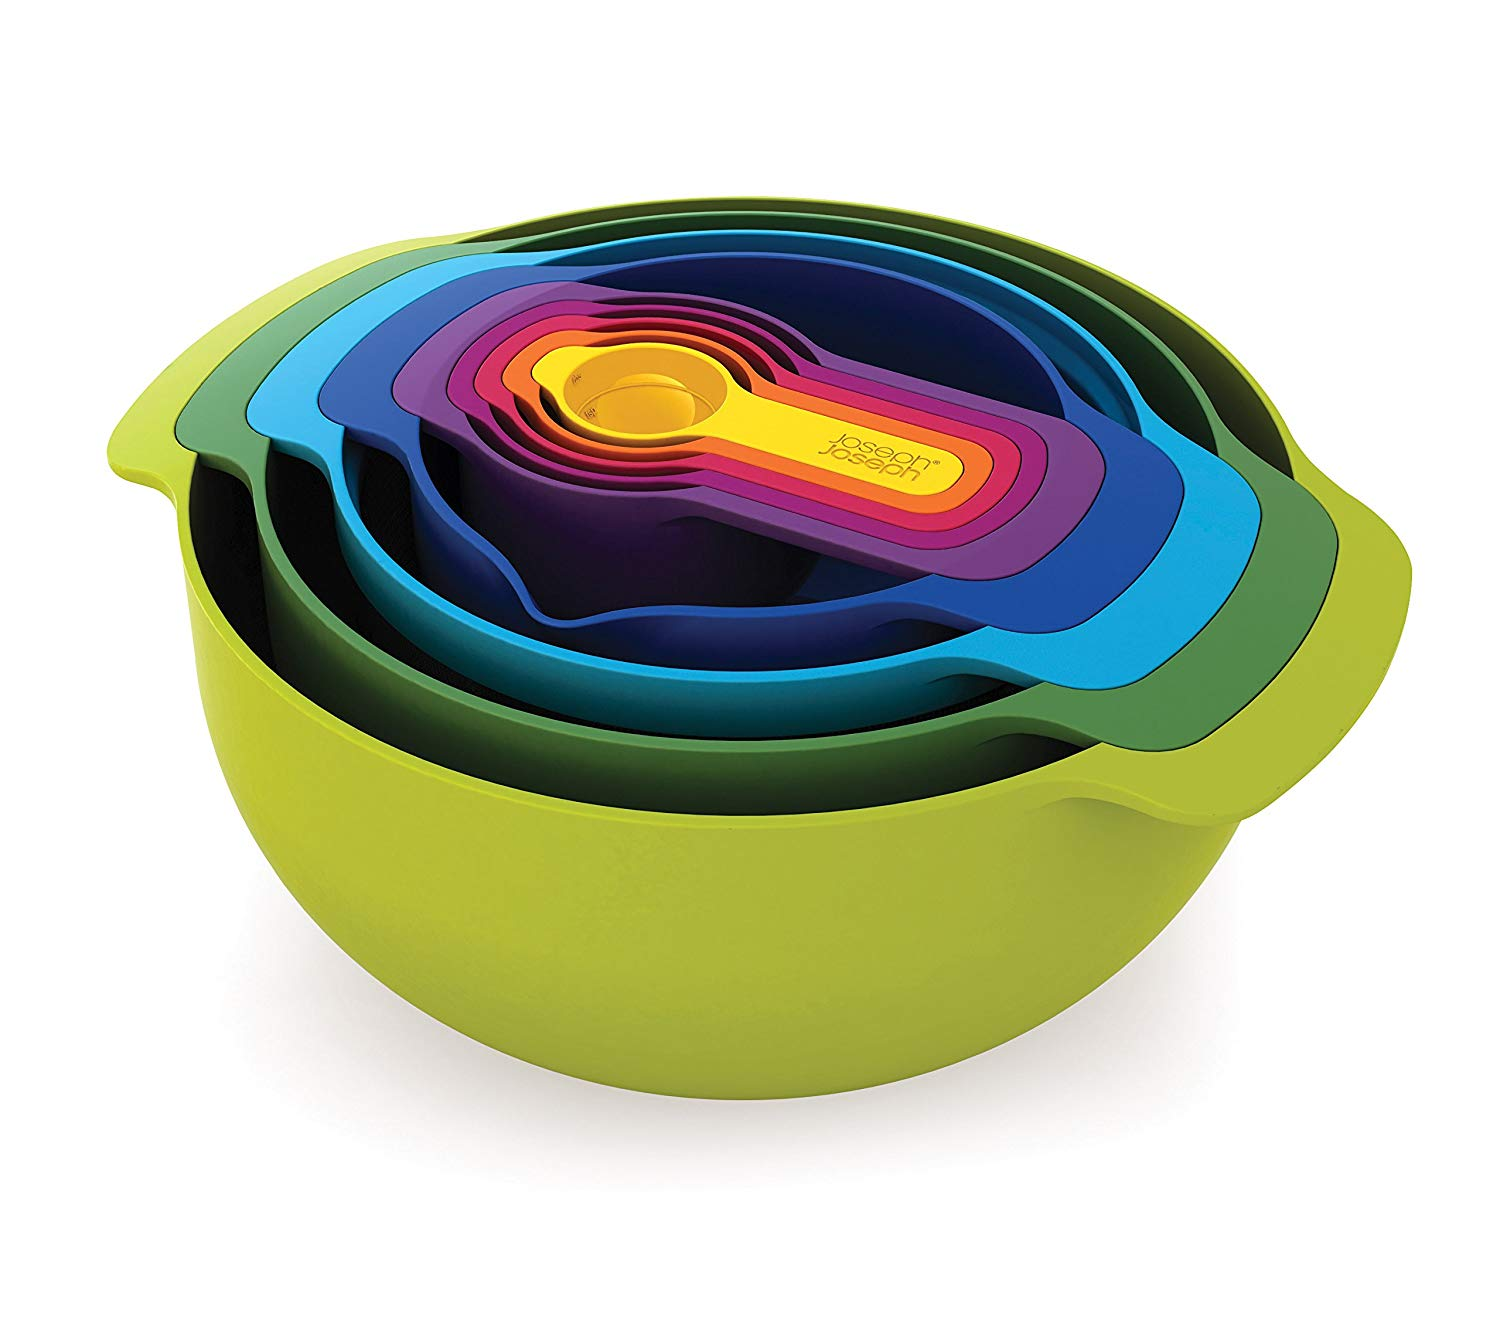 Joseph Joseph Multi-Colored Bowls Set